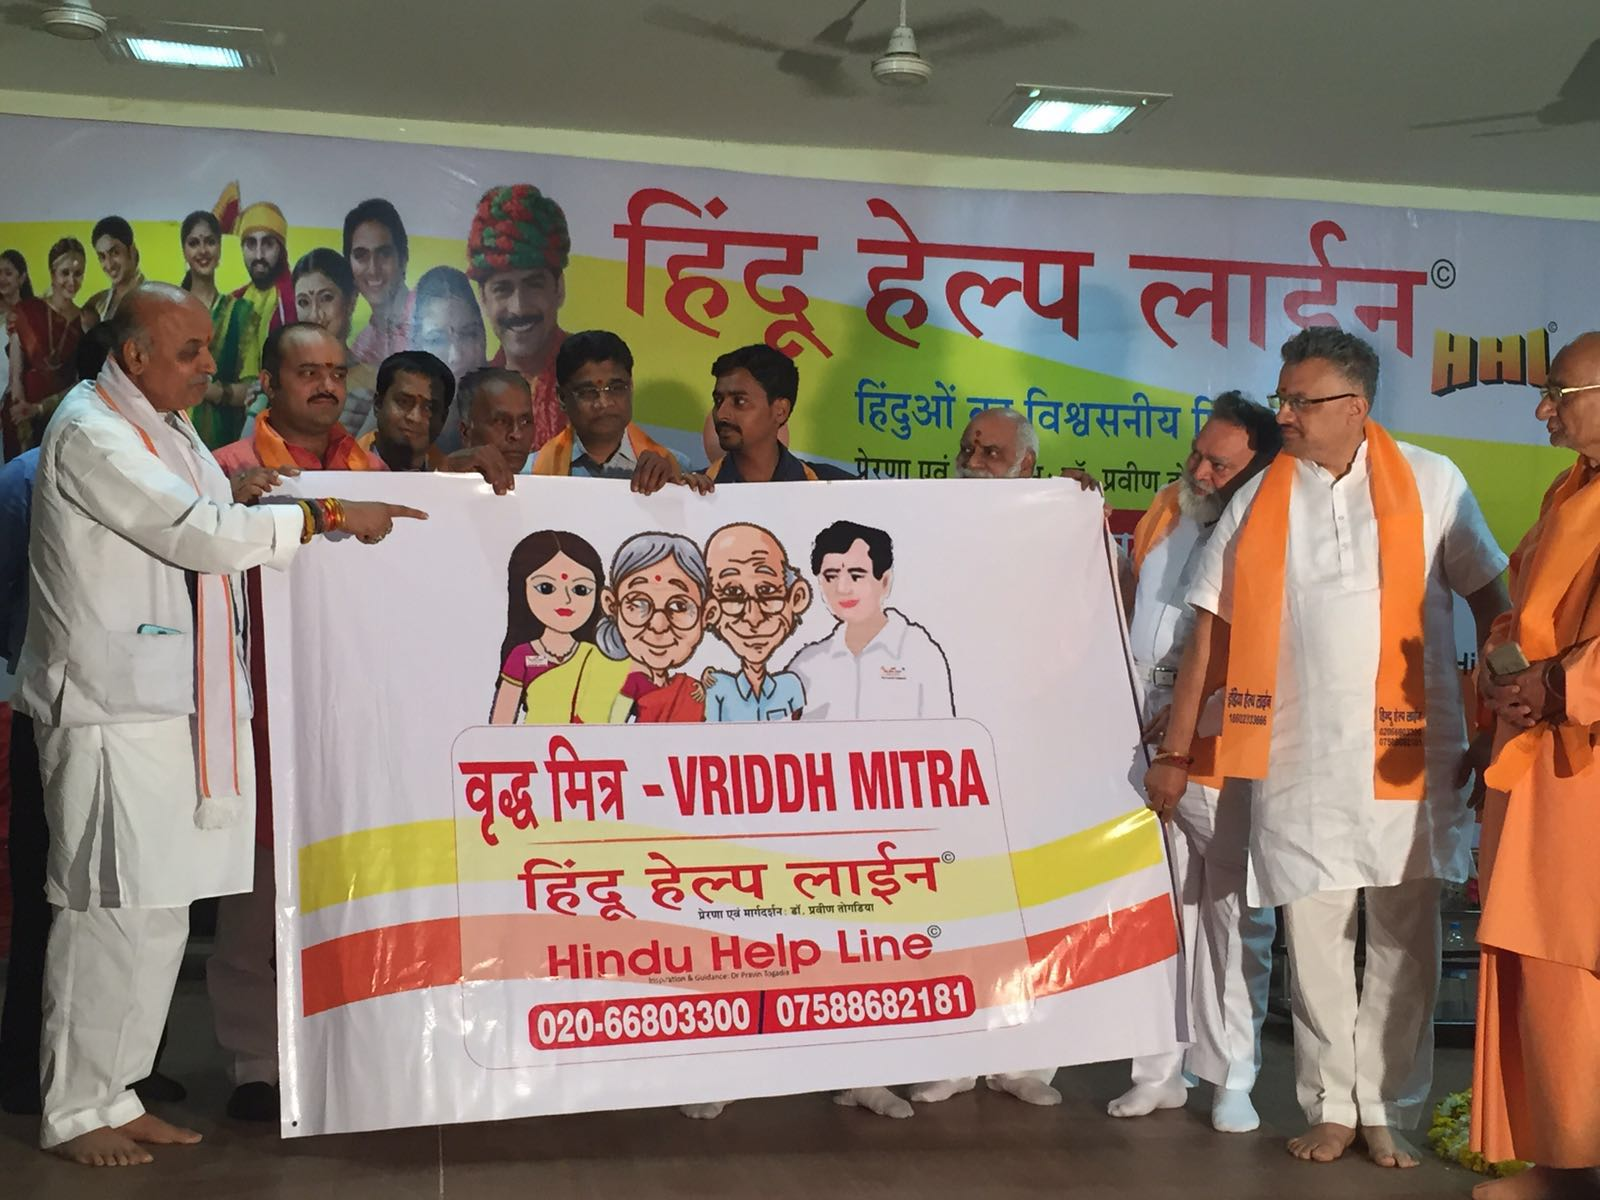 'VRIDDH-MITRA' Service for Senior Citizens Launched by Hindu Help Line On 5th Anniversary